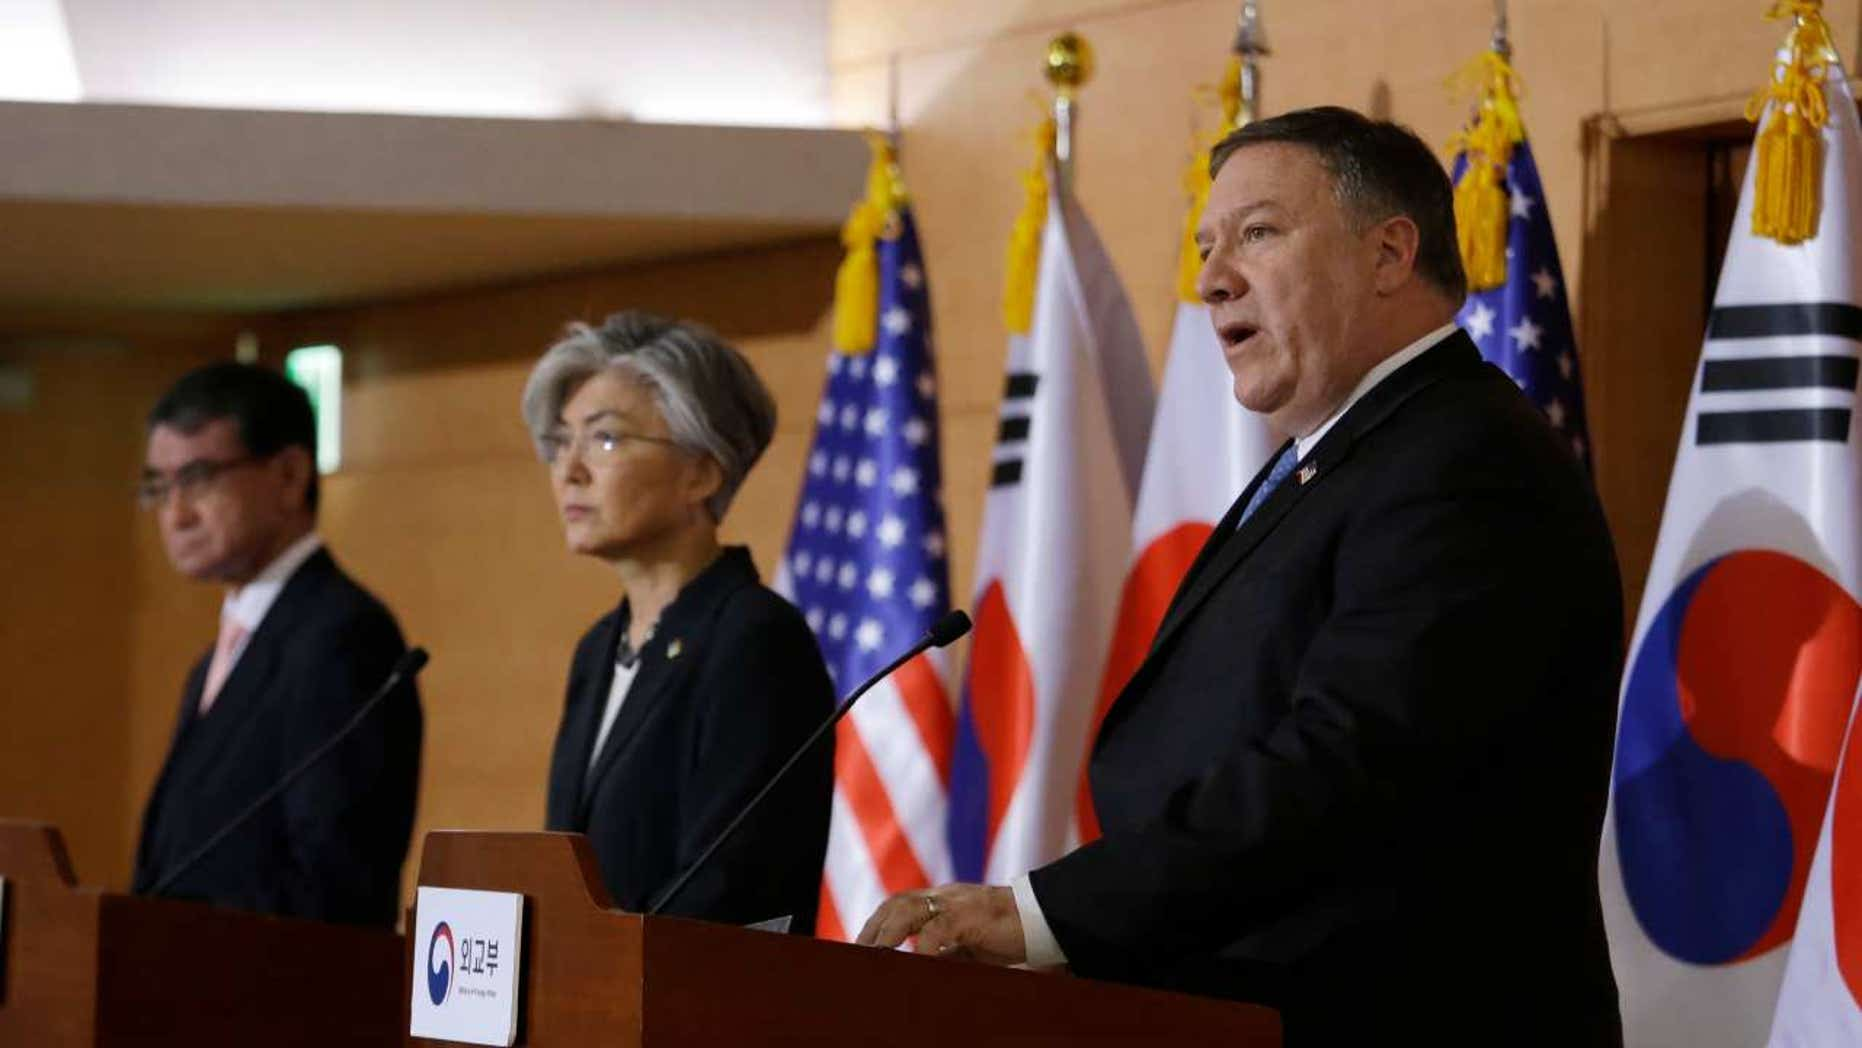 U.S. Secretary of State Mike Pompeo, right, speaks as South Korean Foreign Minister Kang Kyung-wha, center, and Japanese Foreign Minister Taro Kono listen during a joint news conference in Seoul, June 14, 2018.